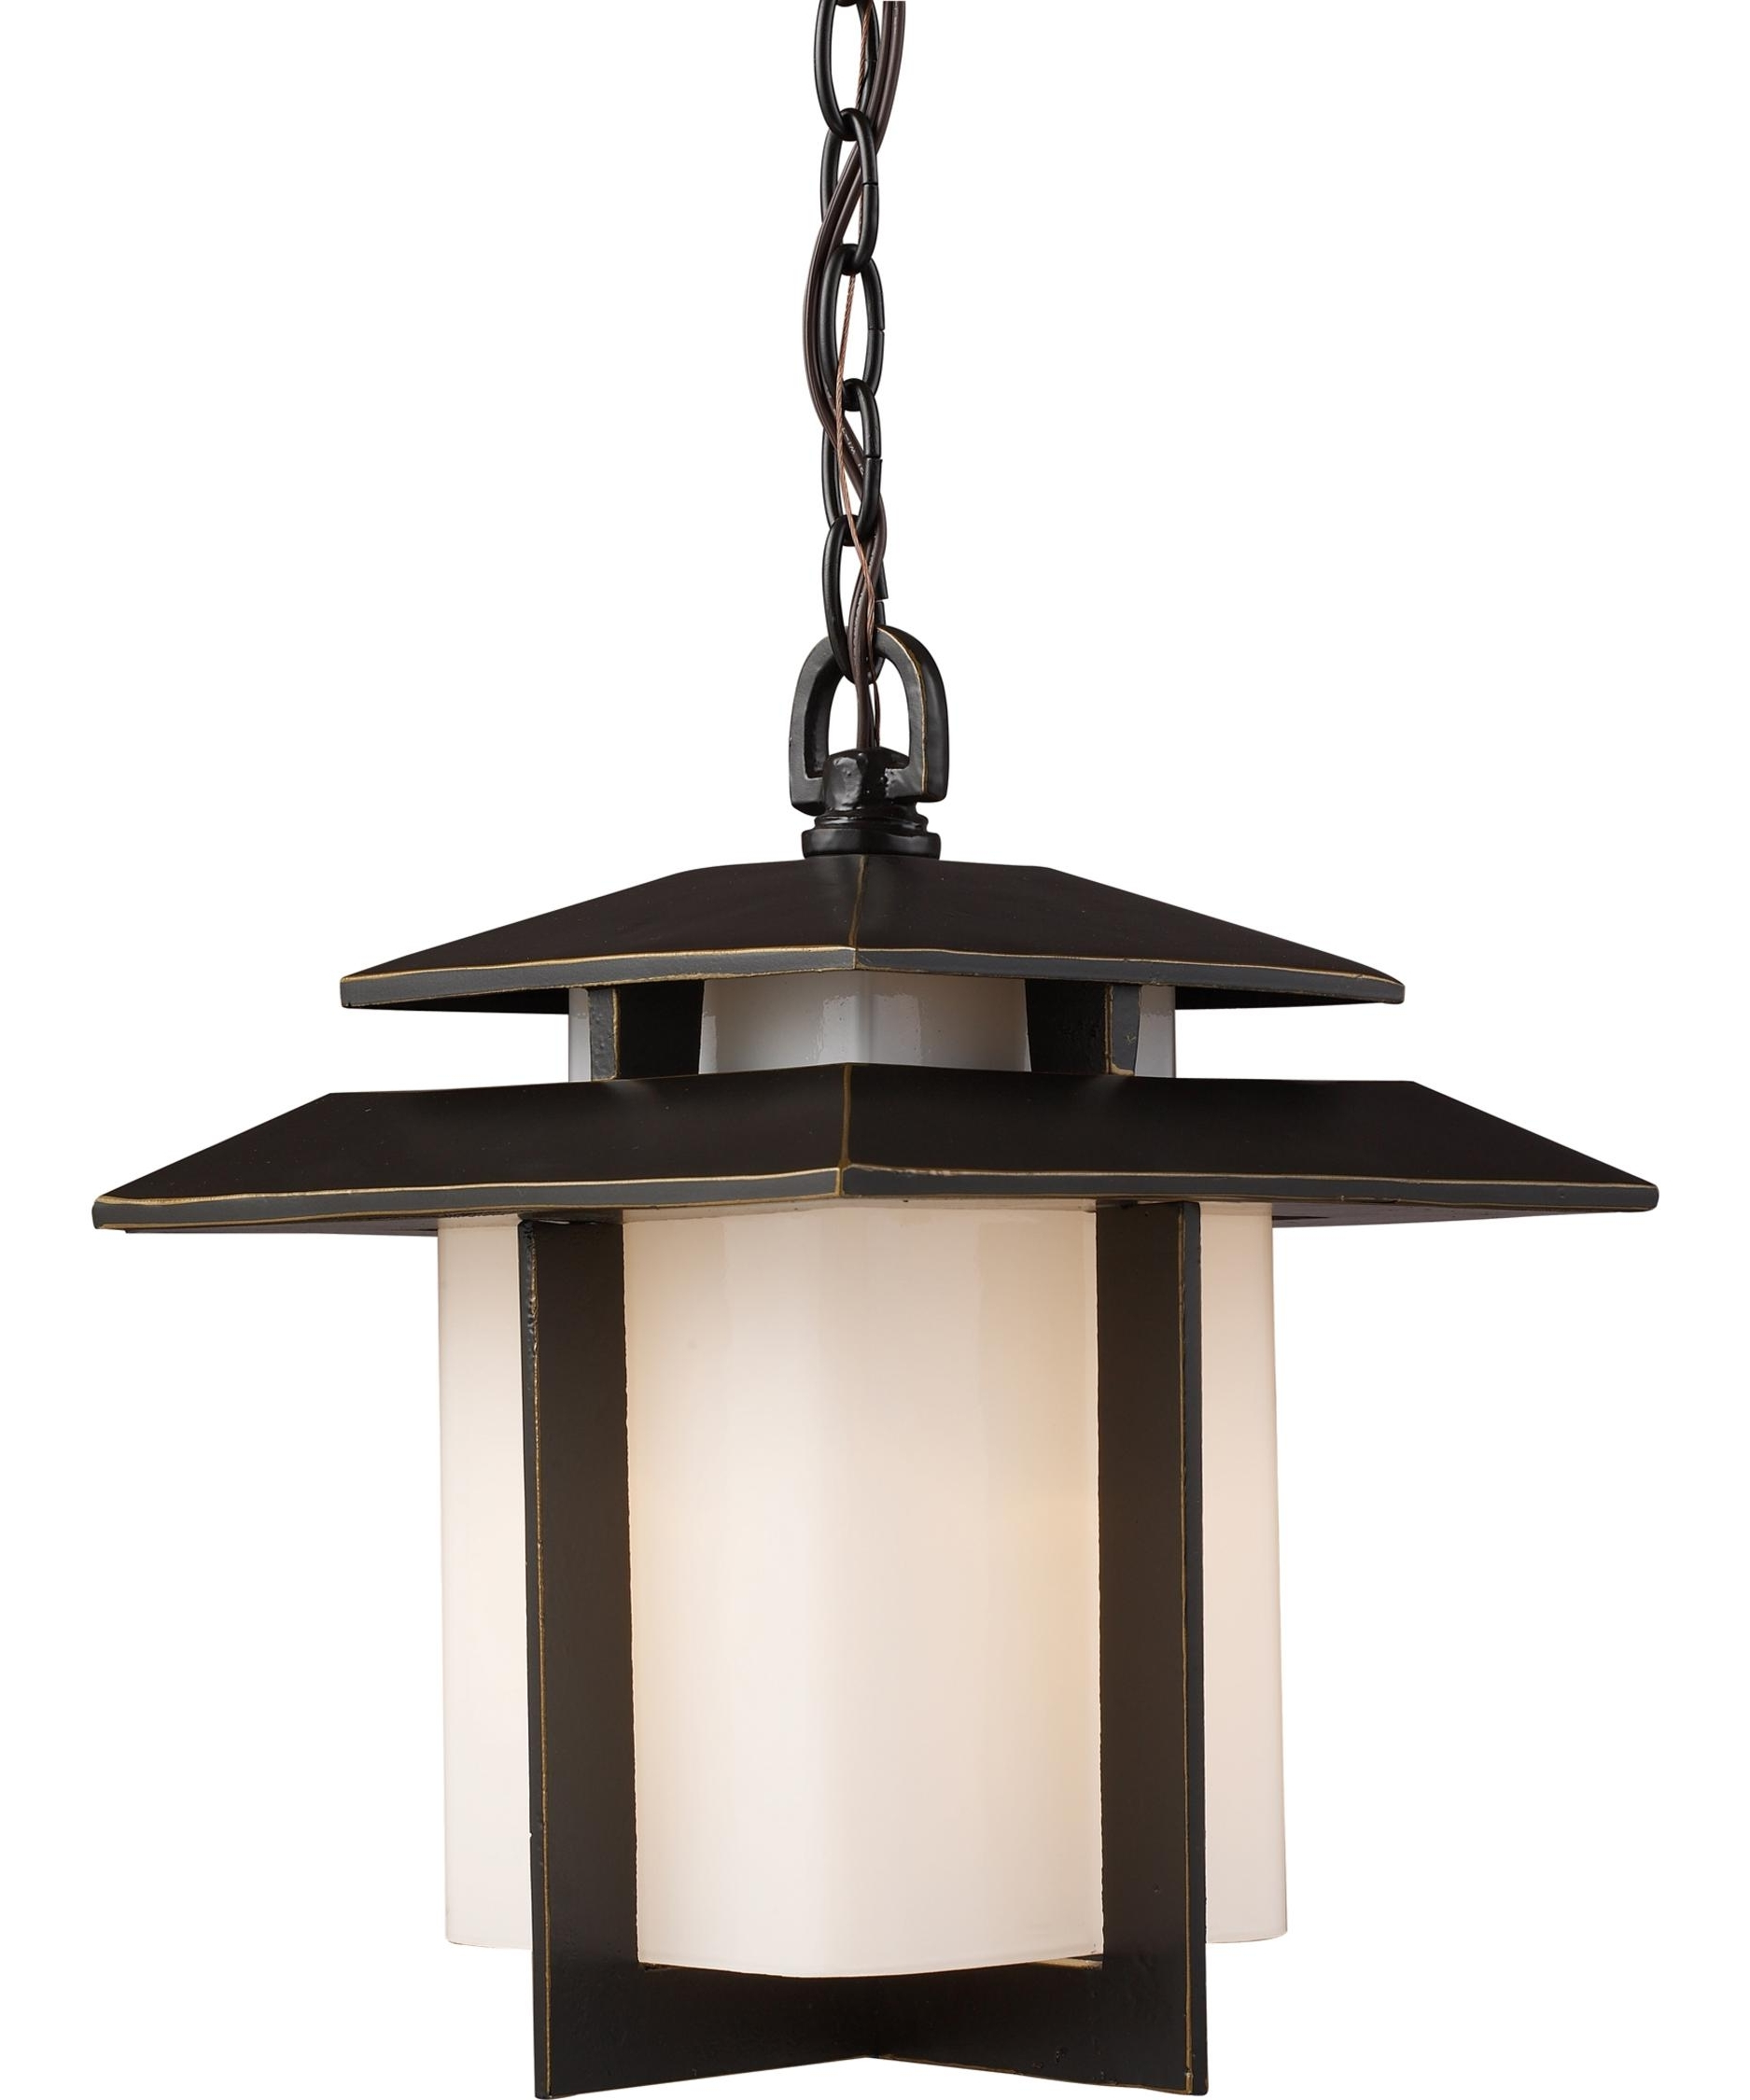 Widely Used Elk Lighting 42172 1 Kanso 10 Inch Wide 1 Light Outdoor Hanging Throughout Outdoor Japanese Lanterns For Sale (View 12 of 20)